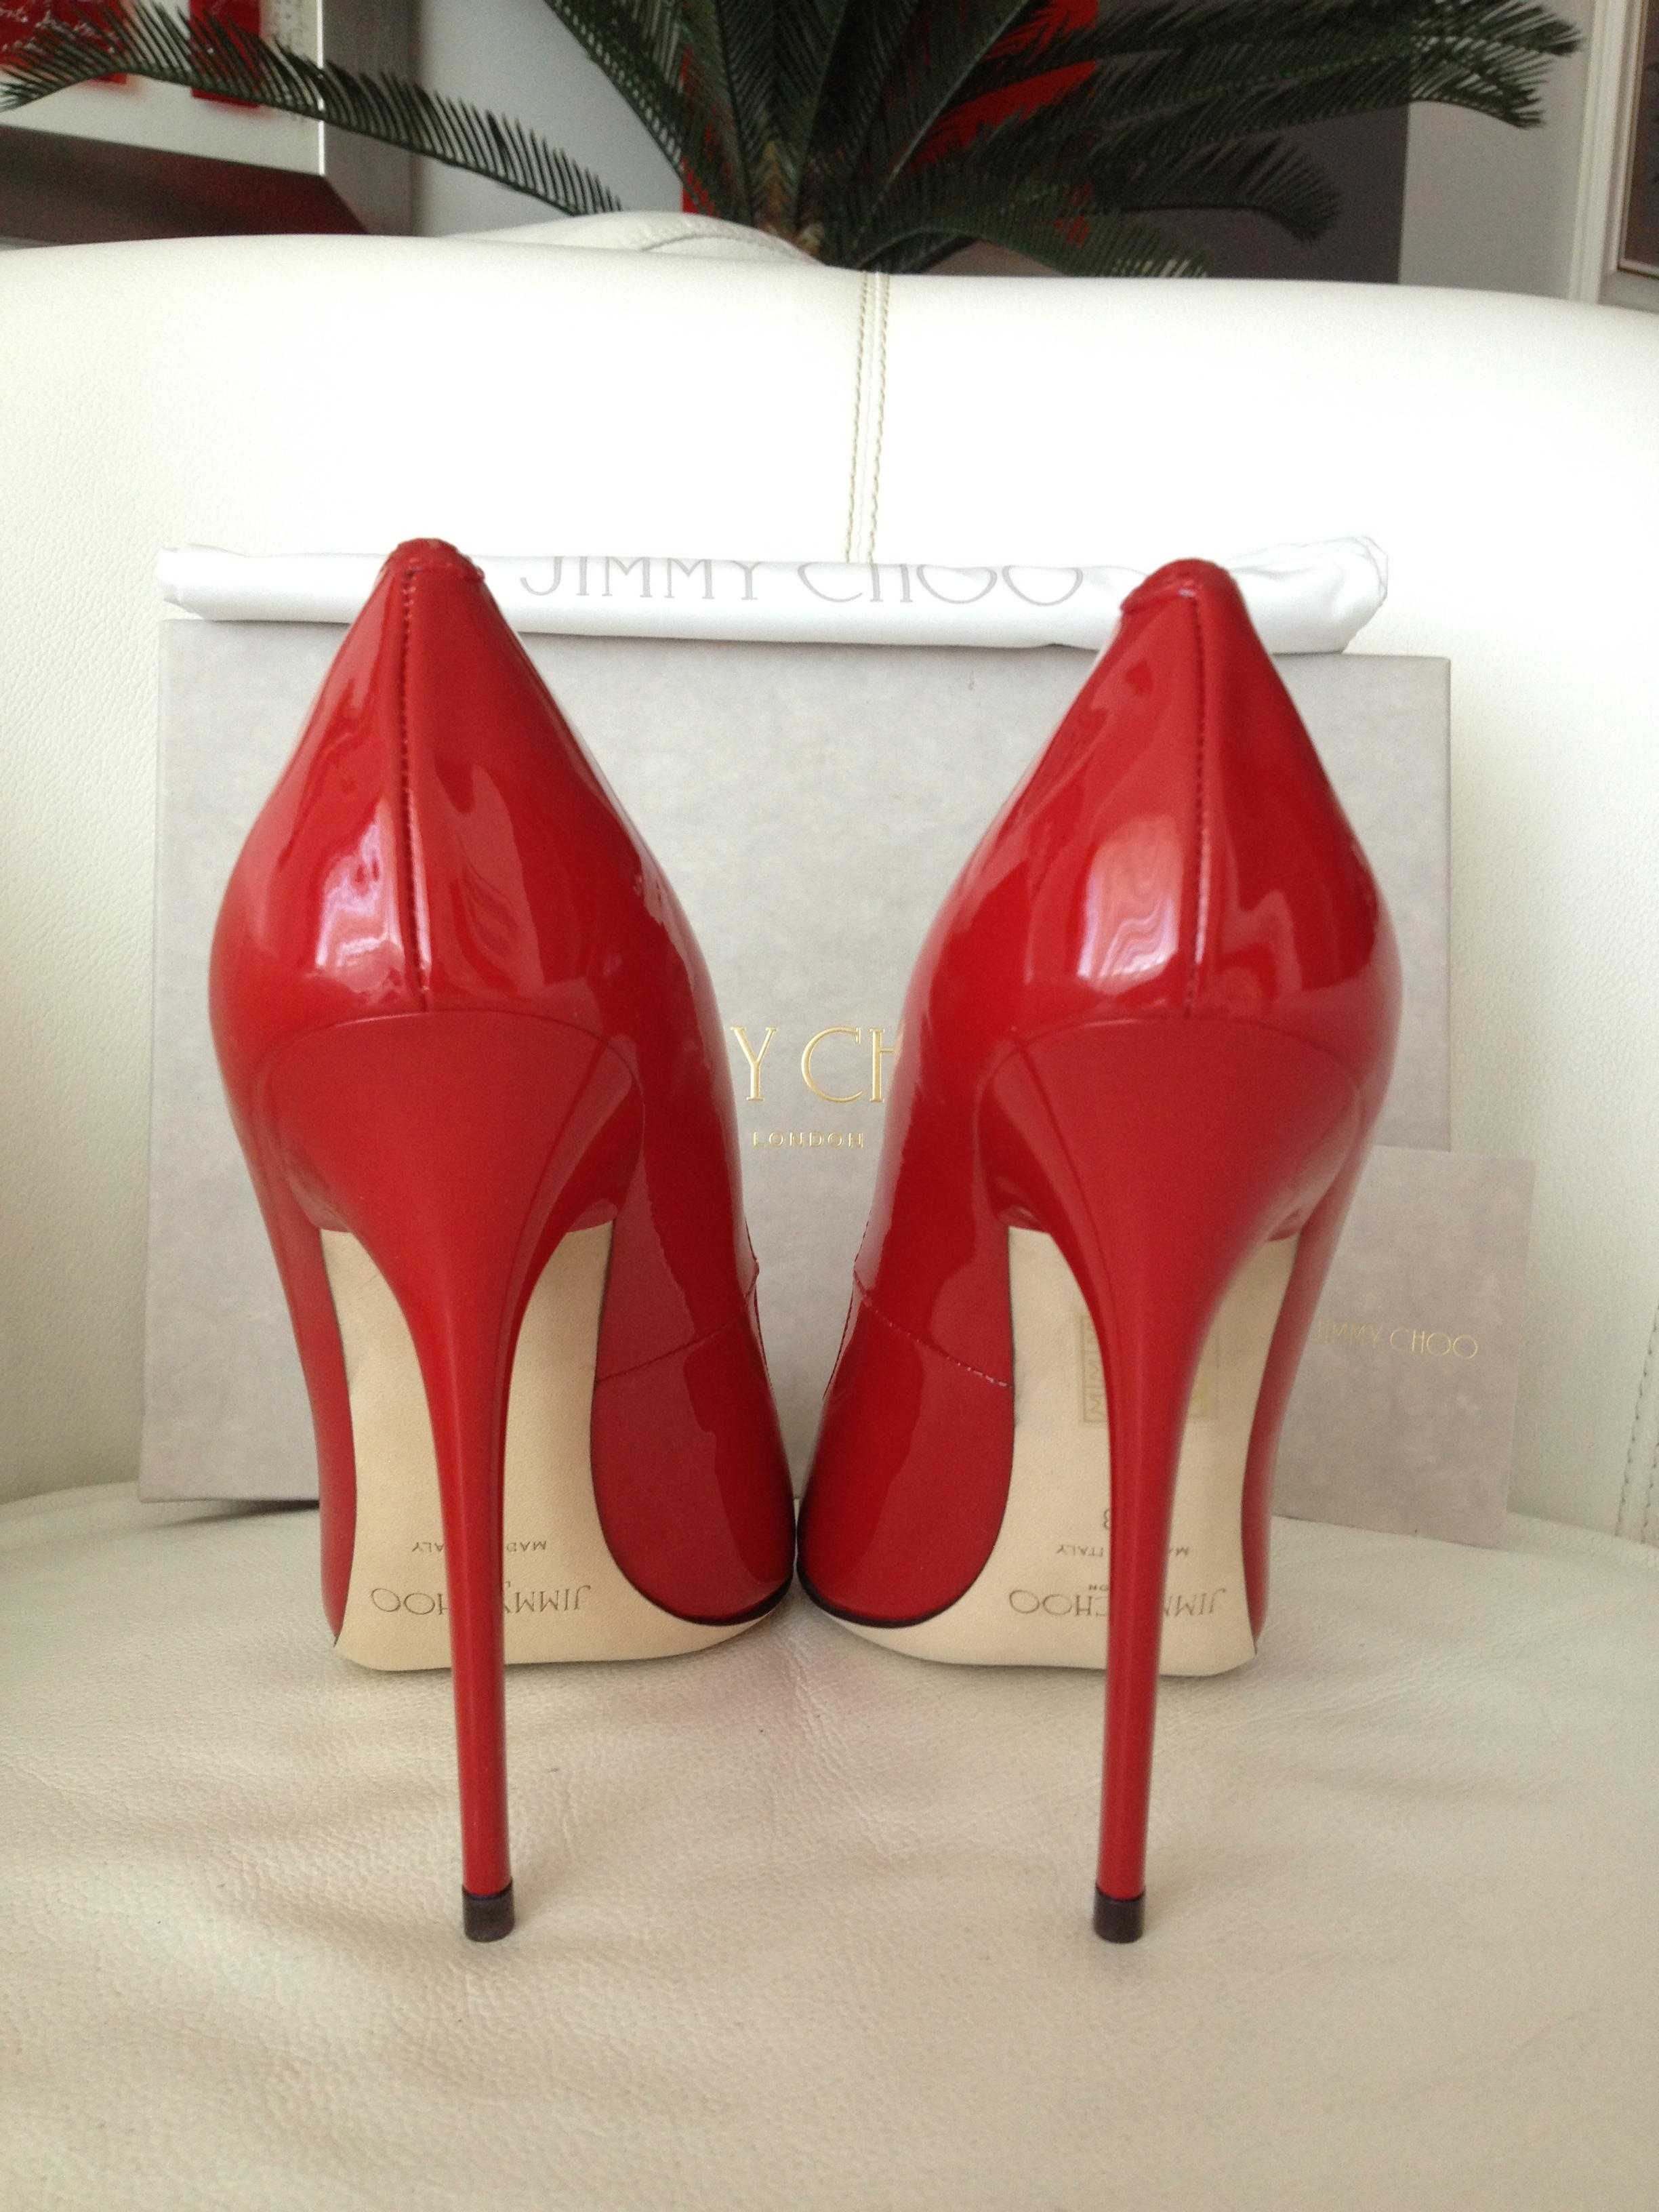 6561f3c1211 Jimmy Choo Red Anouk 120 Patent Leather Pumps Size Size Size US 8 ...